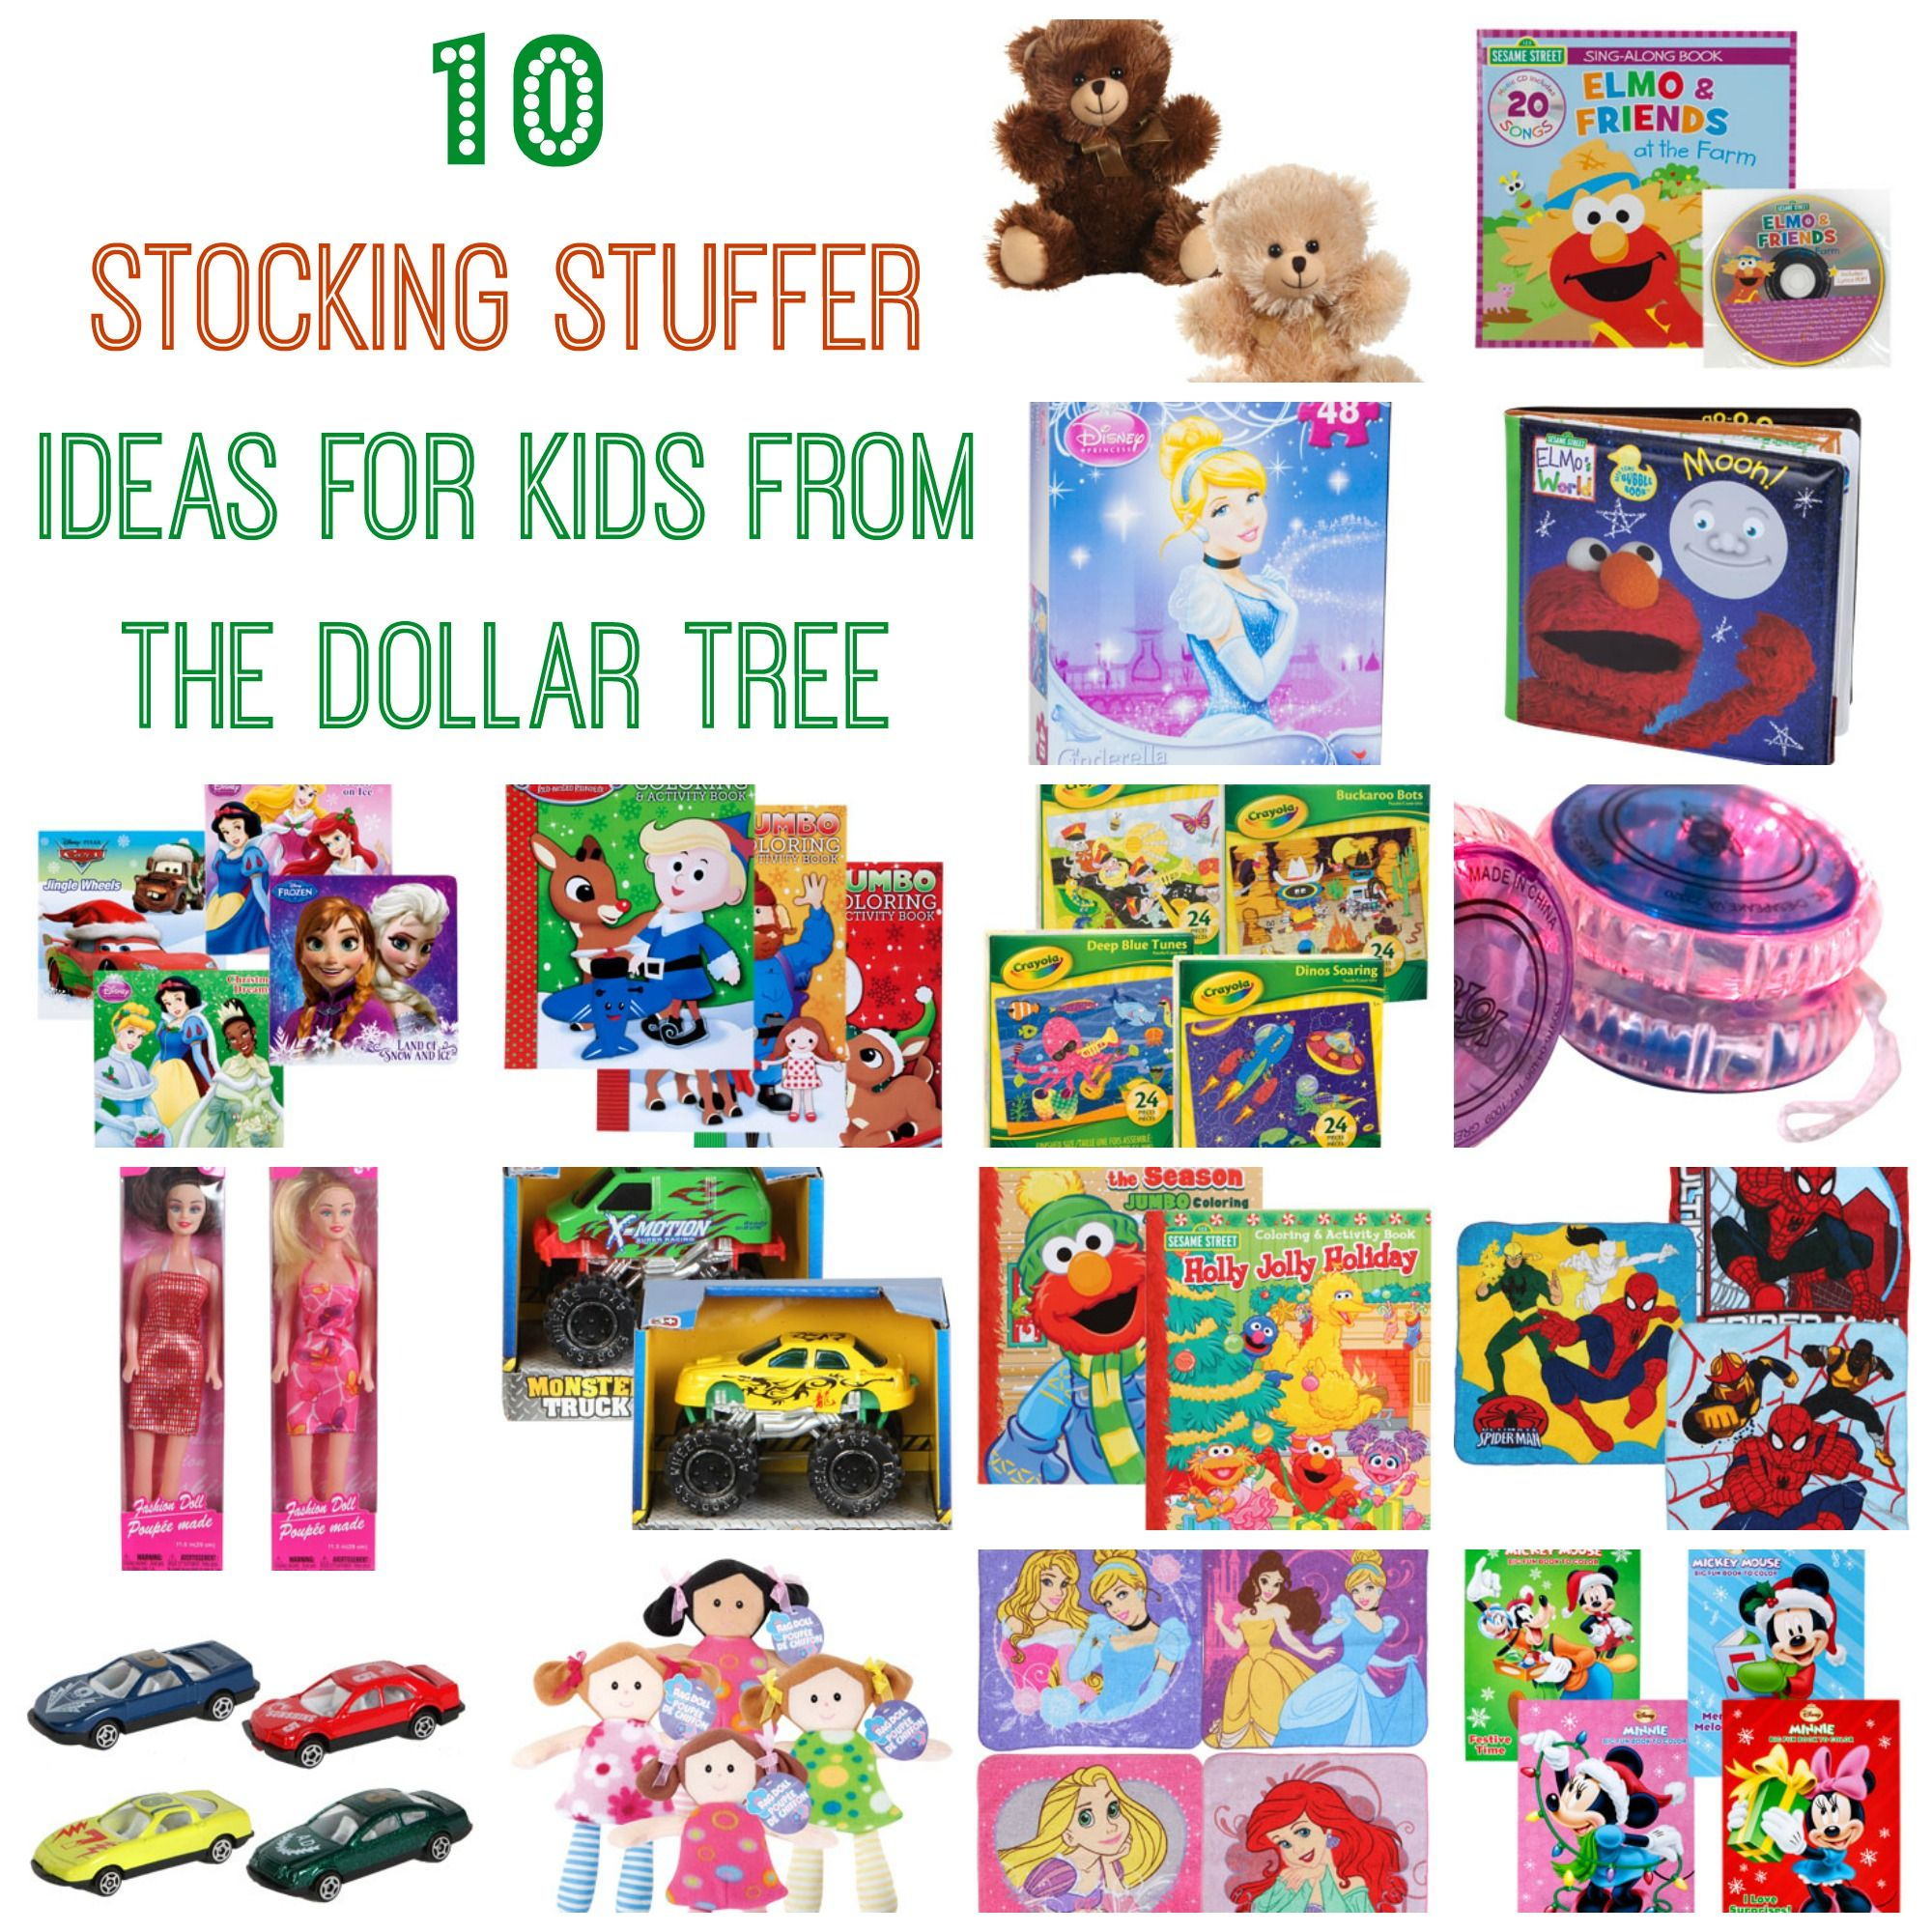 Stuff Your Christmas Stockings At The Dollar Tree Fmegifts Frugal Mom Eh Dollar Tree Gifts Christmas Gifts For Kids Dollar Tree